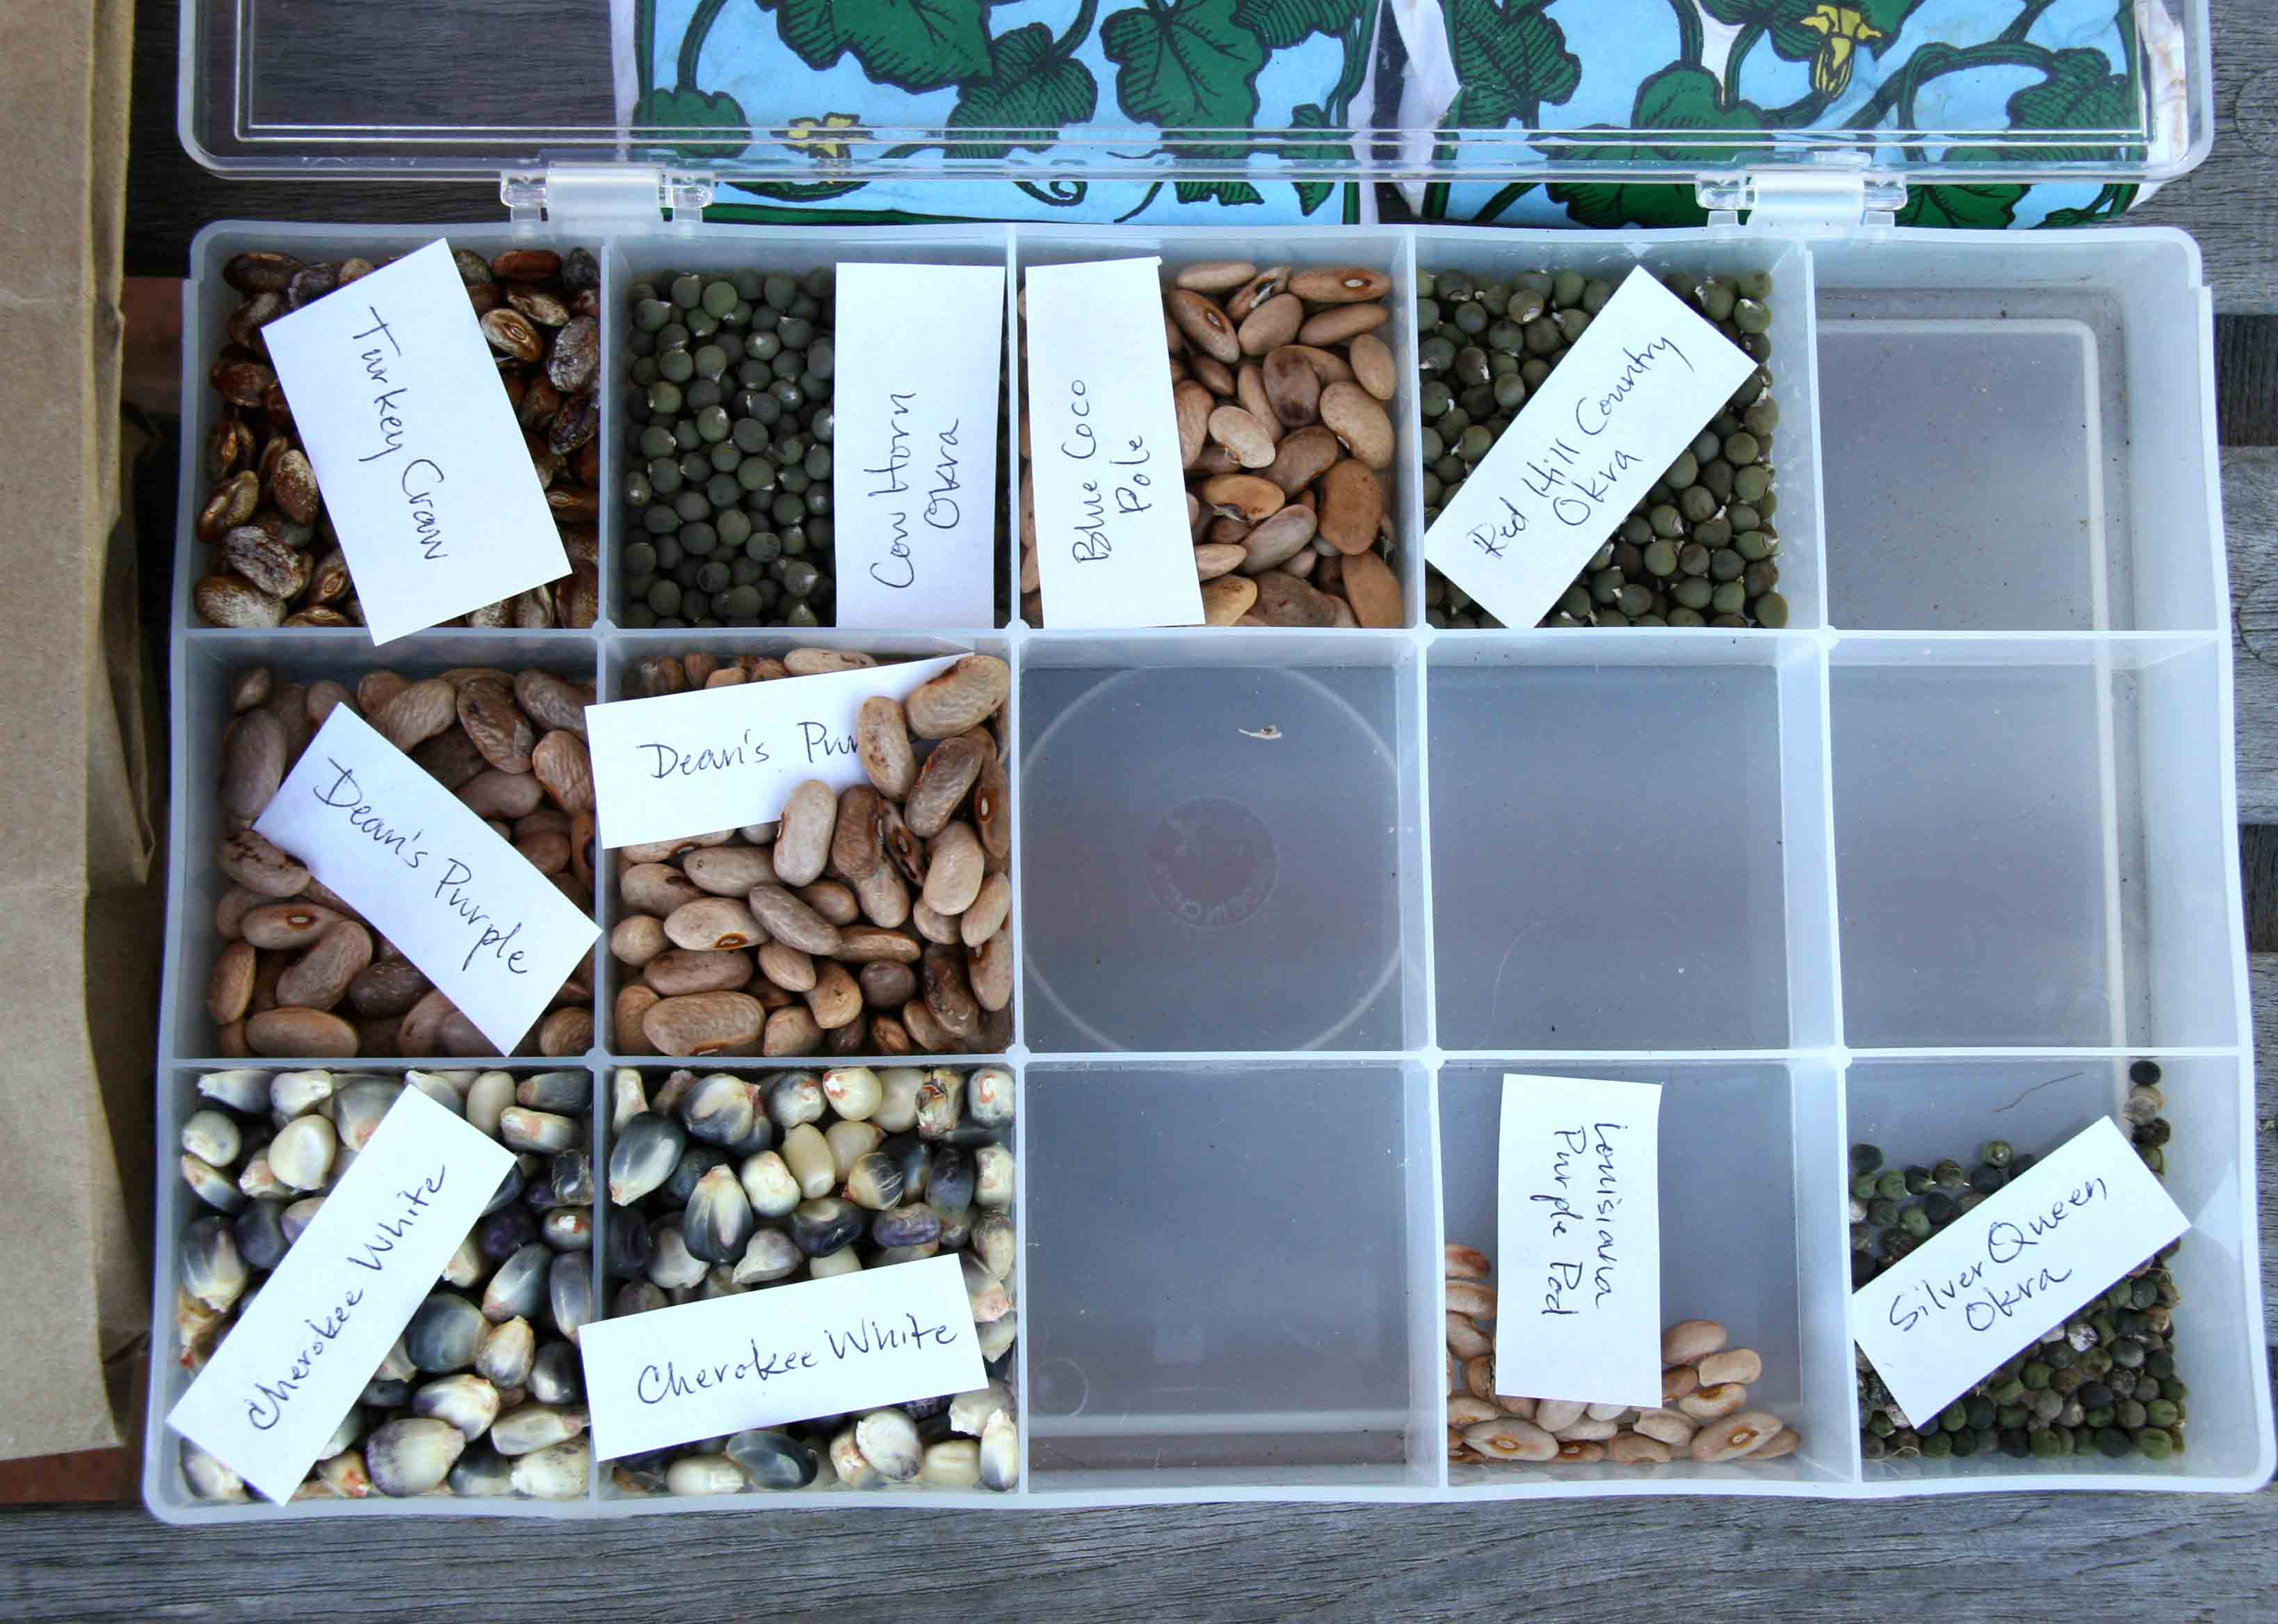 Photos of seeds available at a recent seed swap at the State Botanical Garden of Georgia.